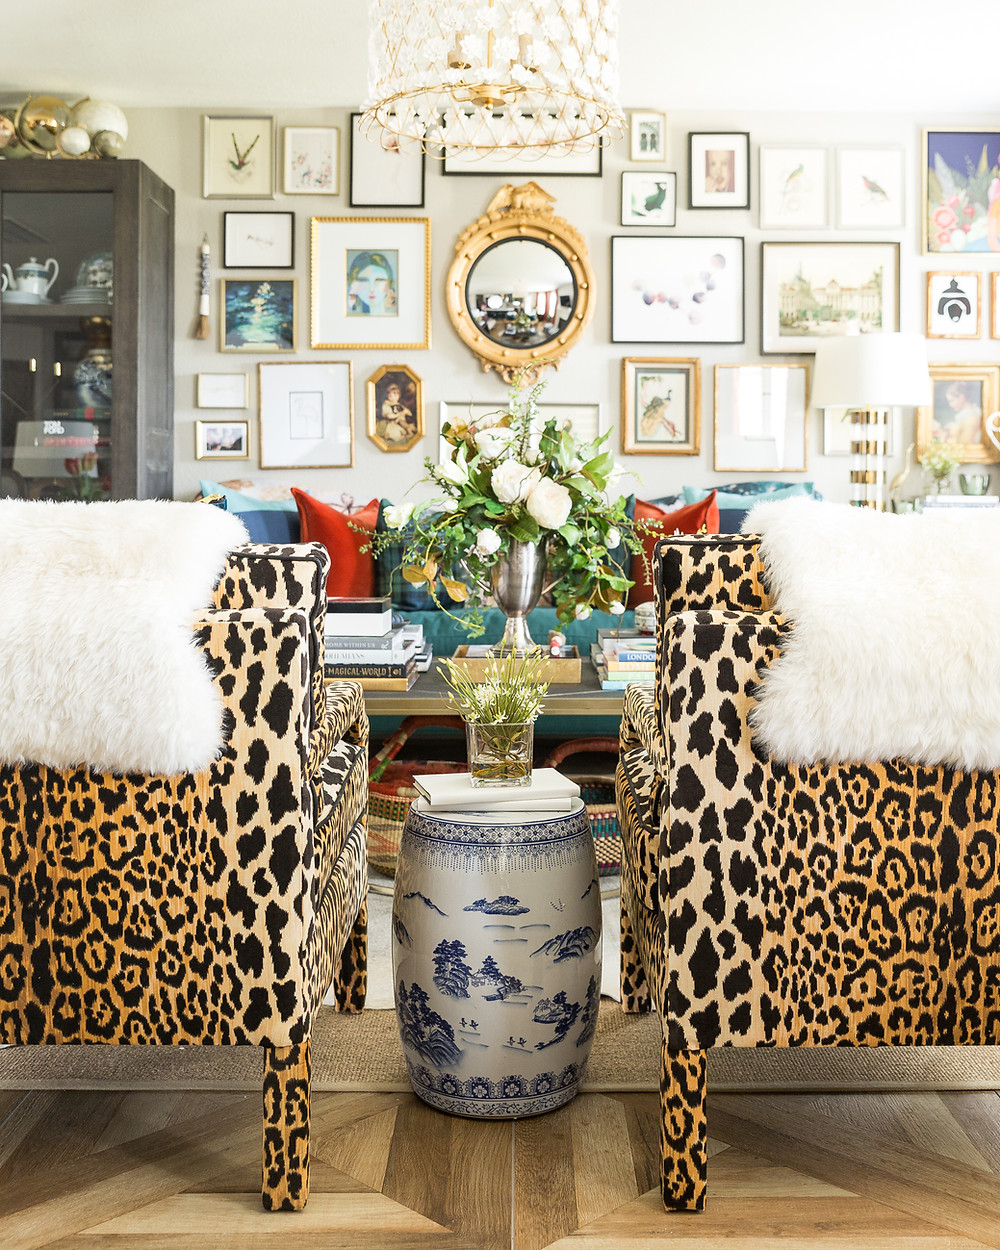 Maximalist living room with gallery wall and cheetah chairs